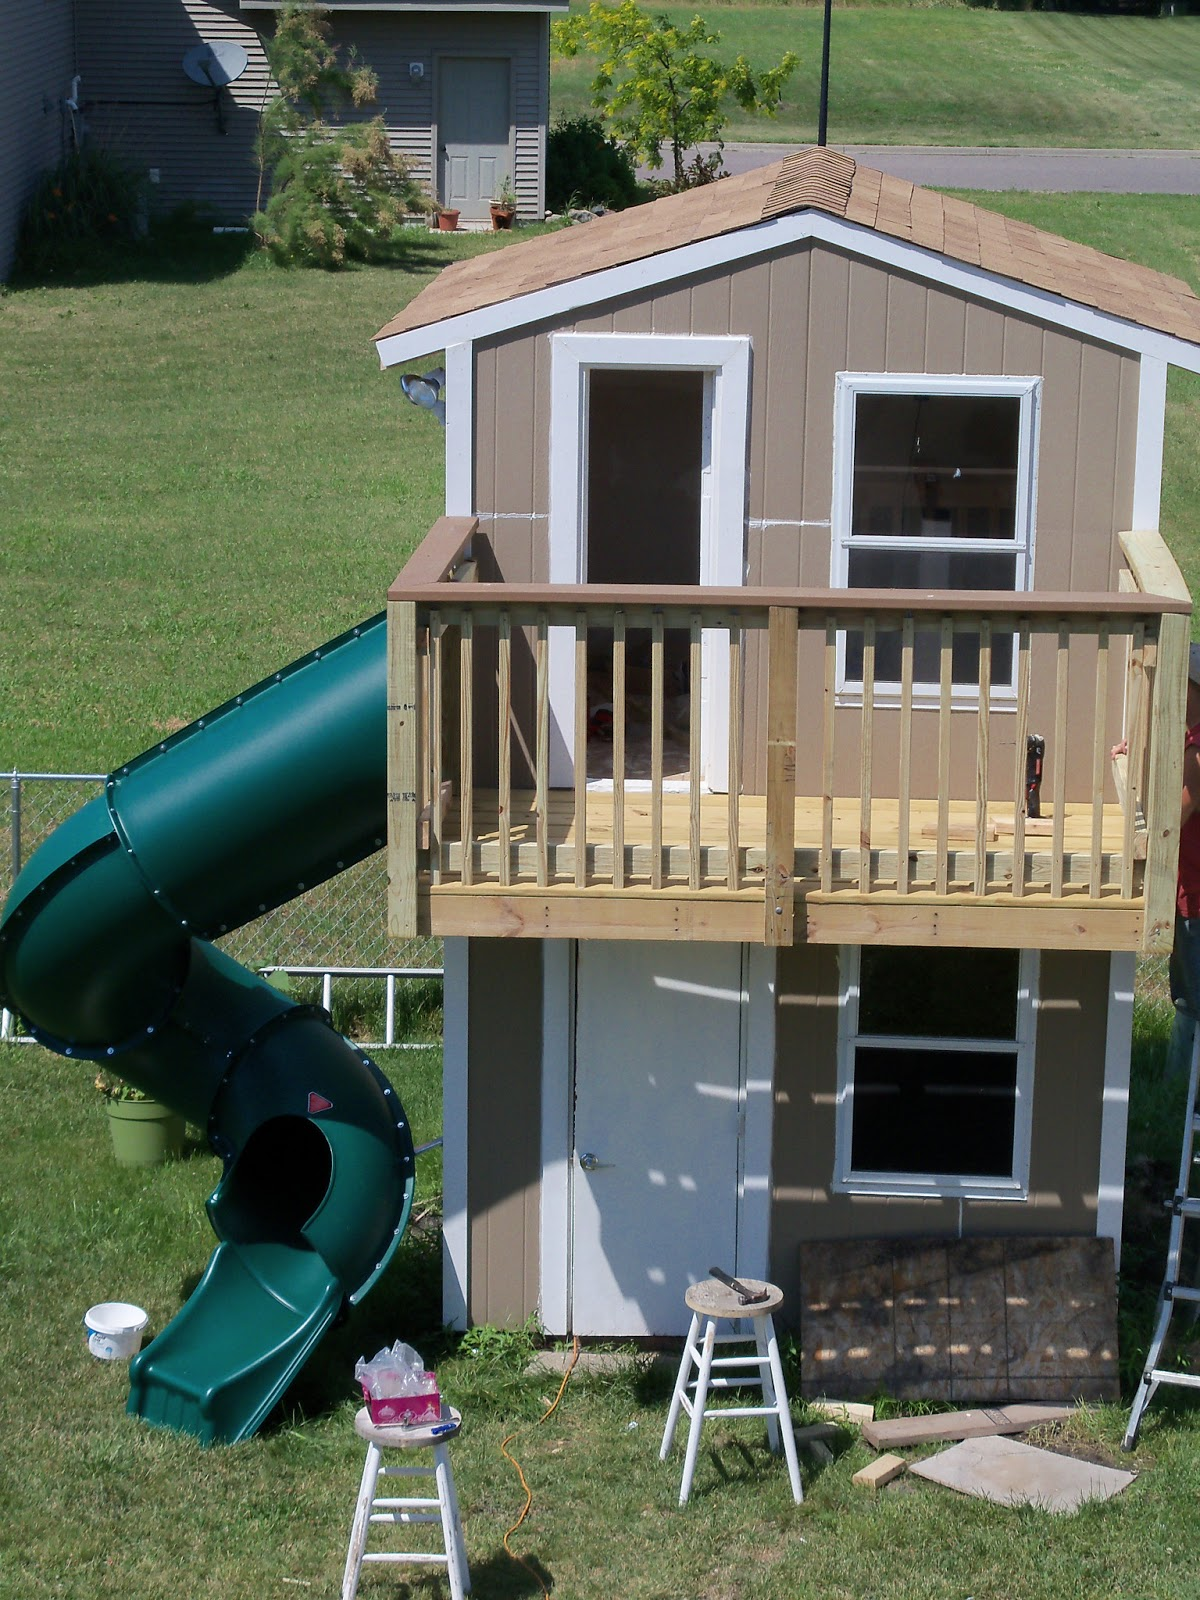 123 Busy Bees: Outdoor Project: Shed/Playhouse Part 5